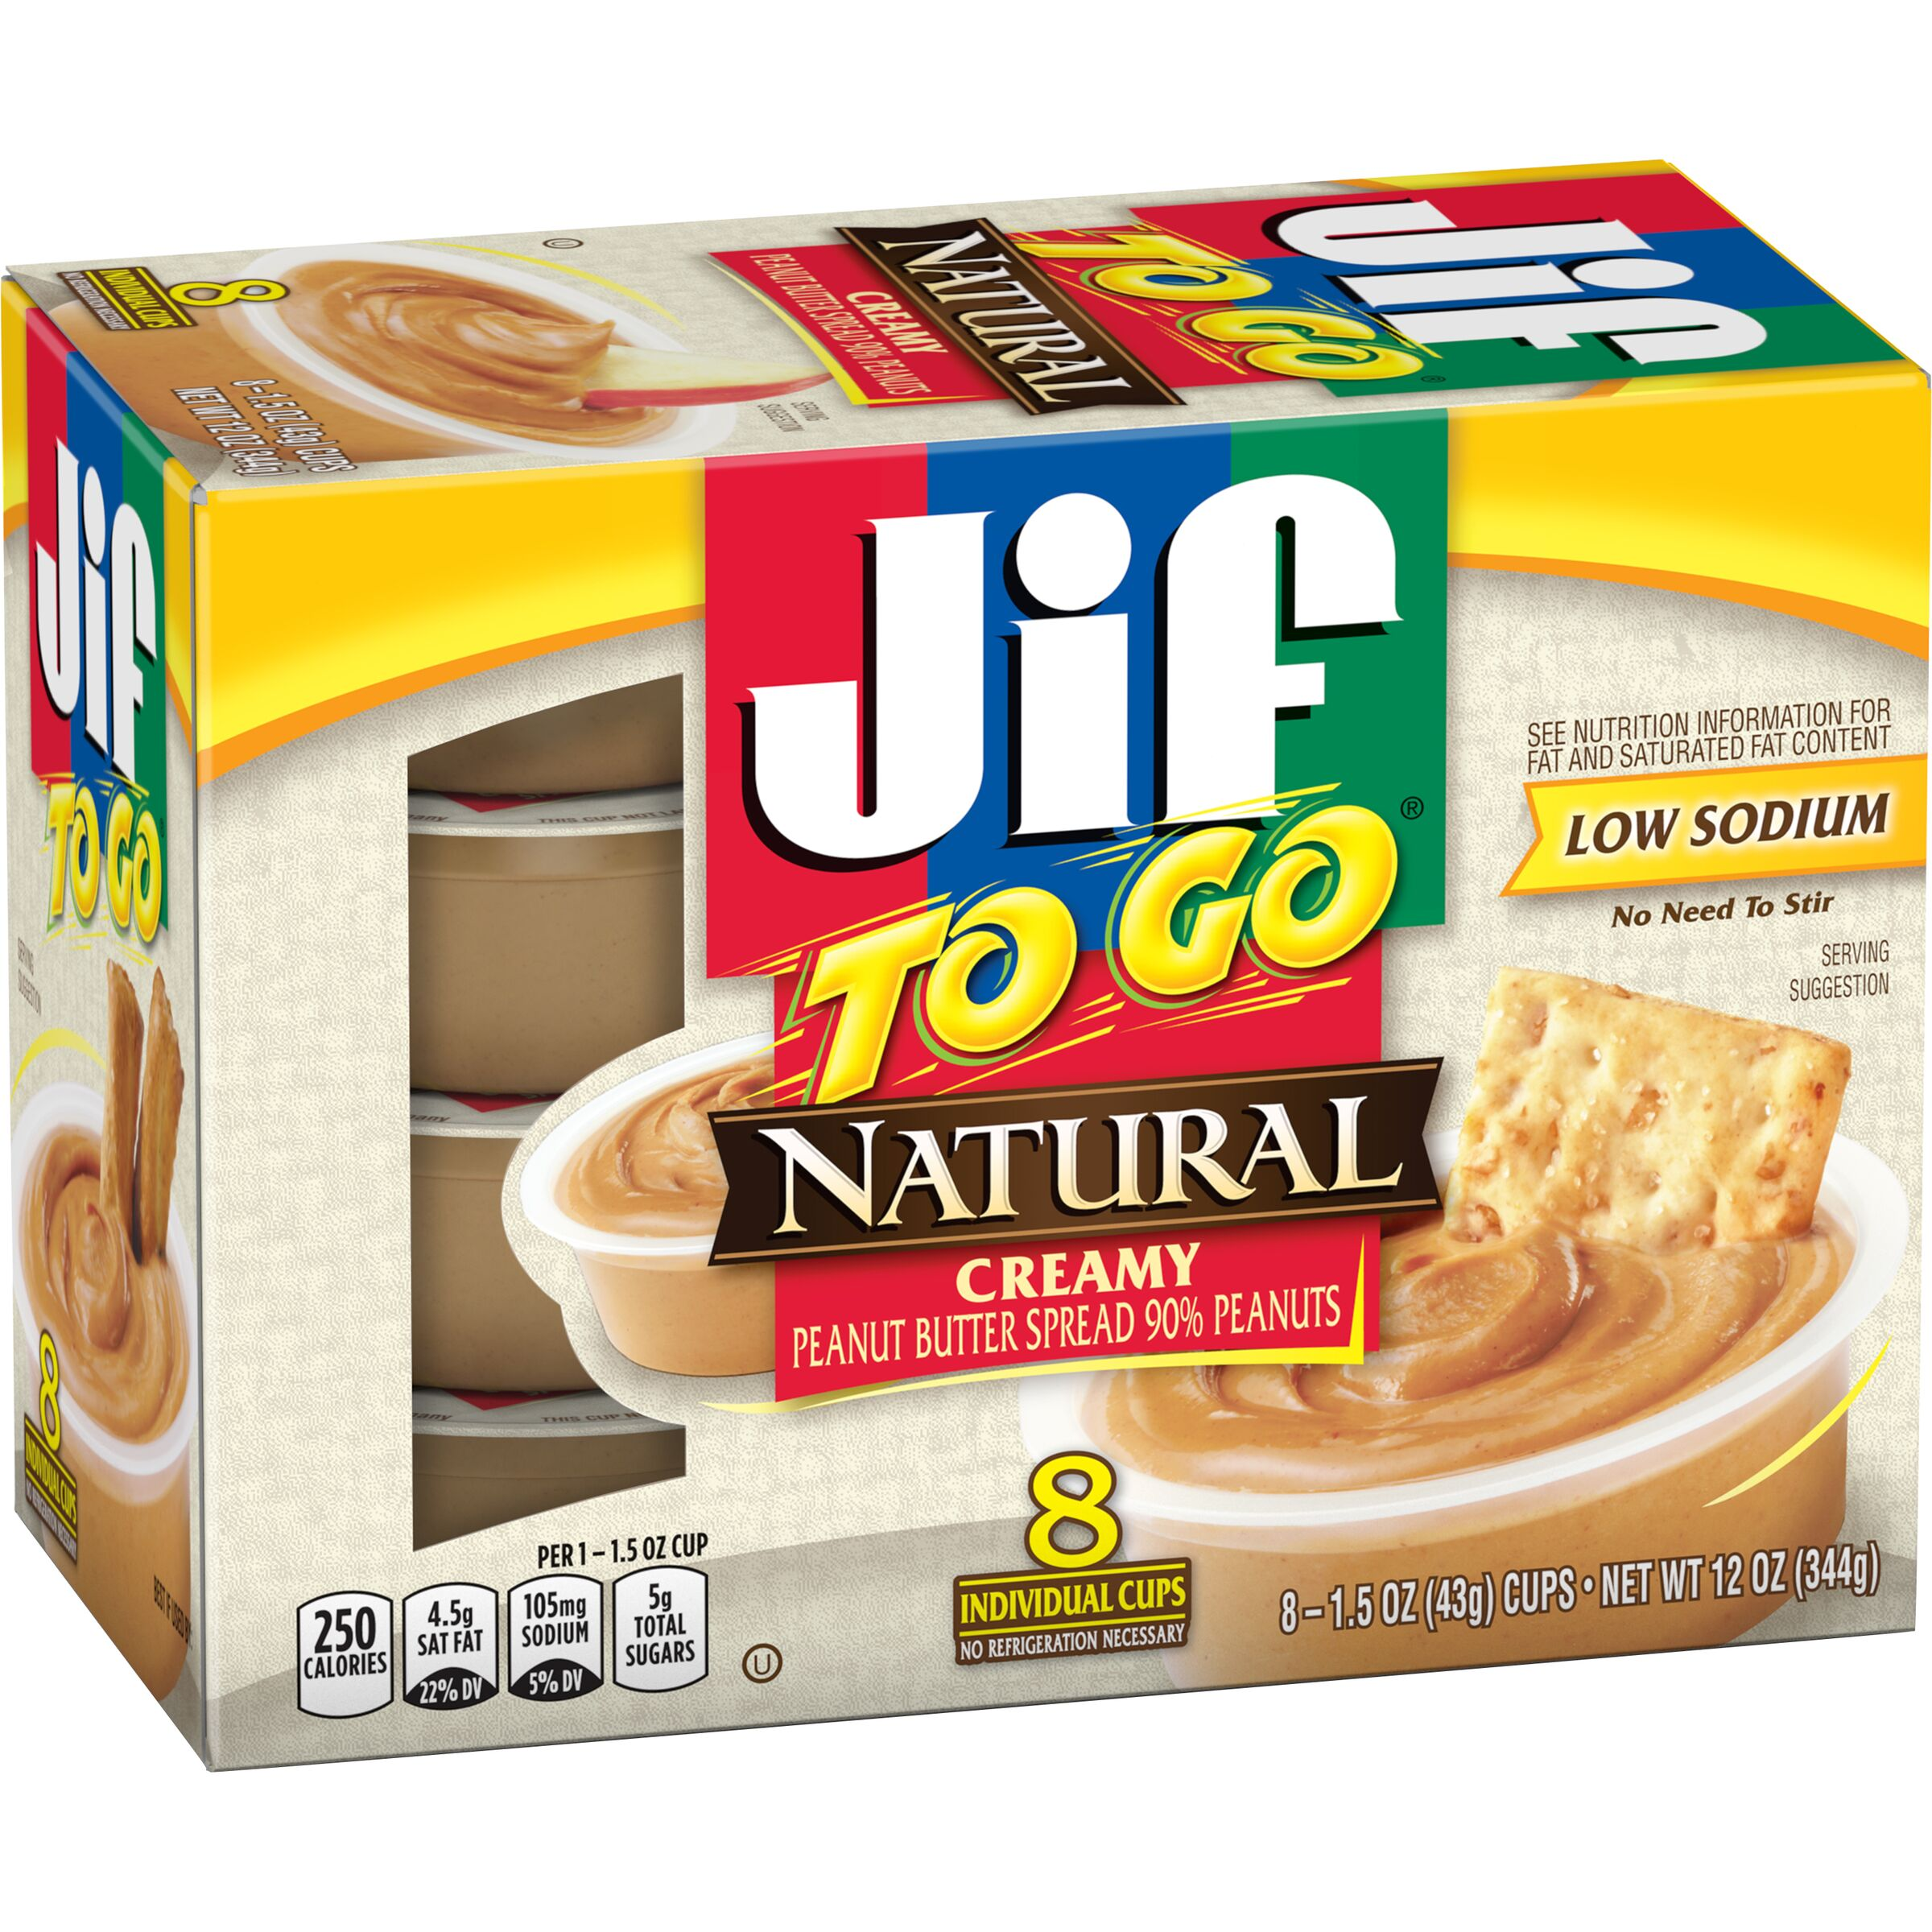 Jif To Go Natural Creamy Peanut Butter Spread